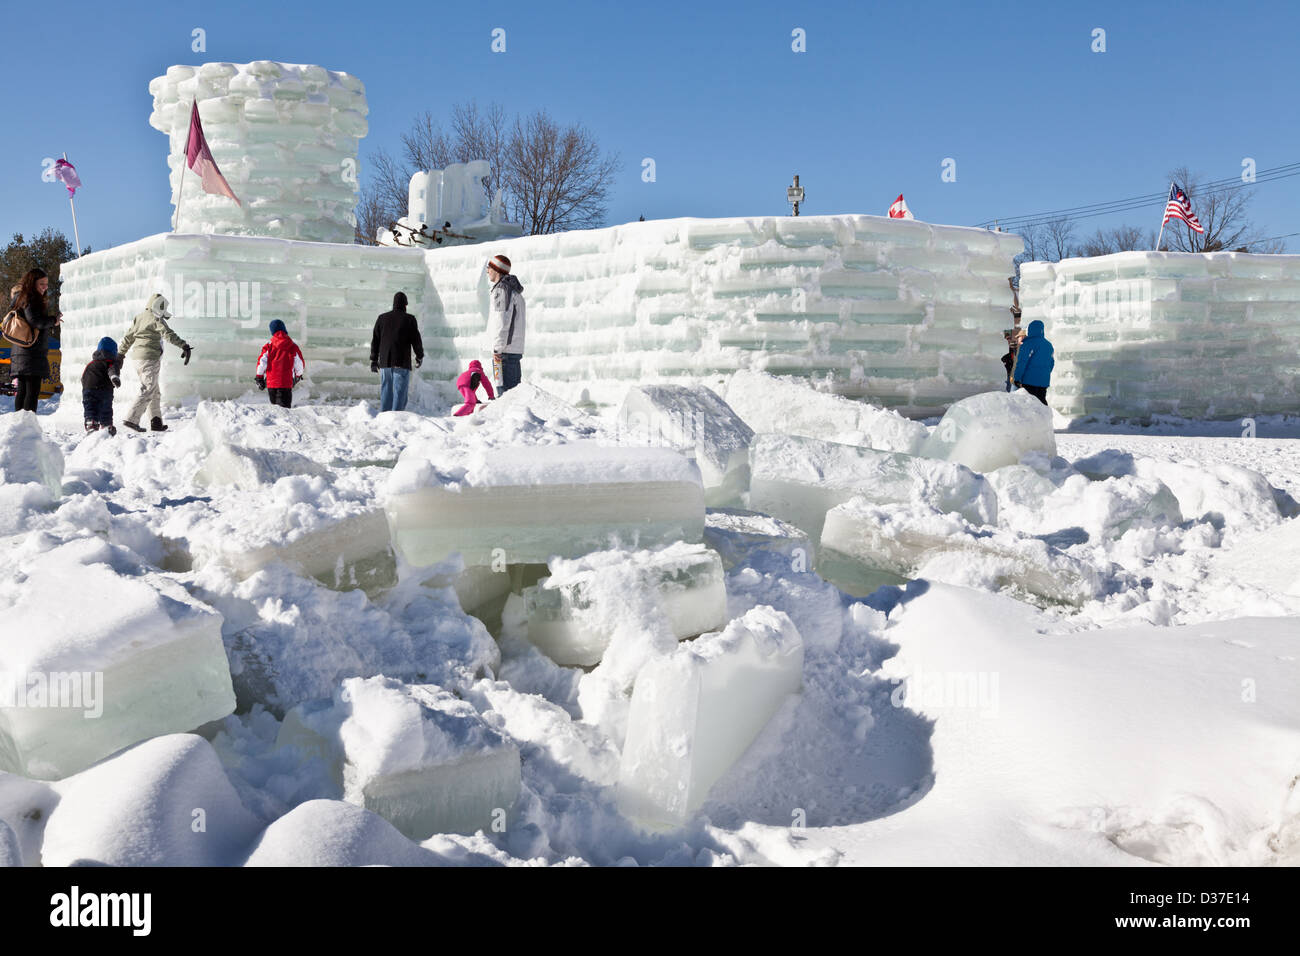 Children and families explore the ice palace at Saranac Lake Winter Carnival, Adirondacks, New York State - Stock Image